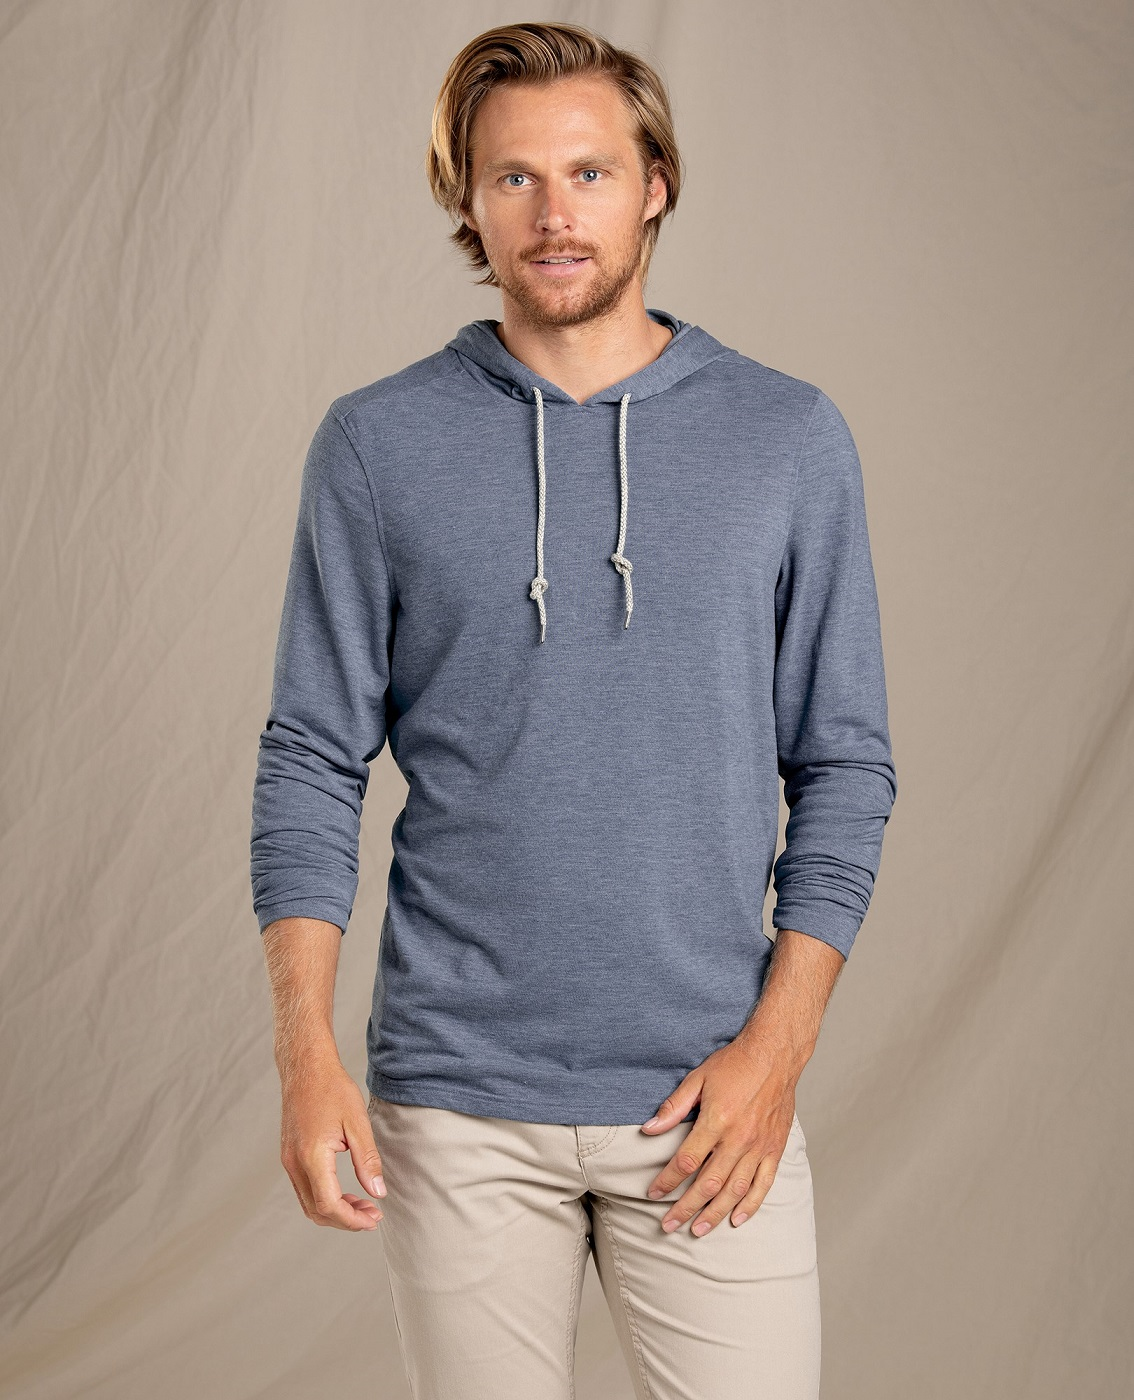 Hoodie from Toad & Co